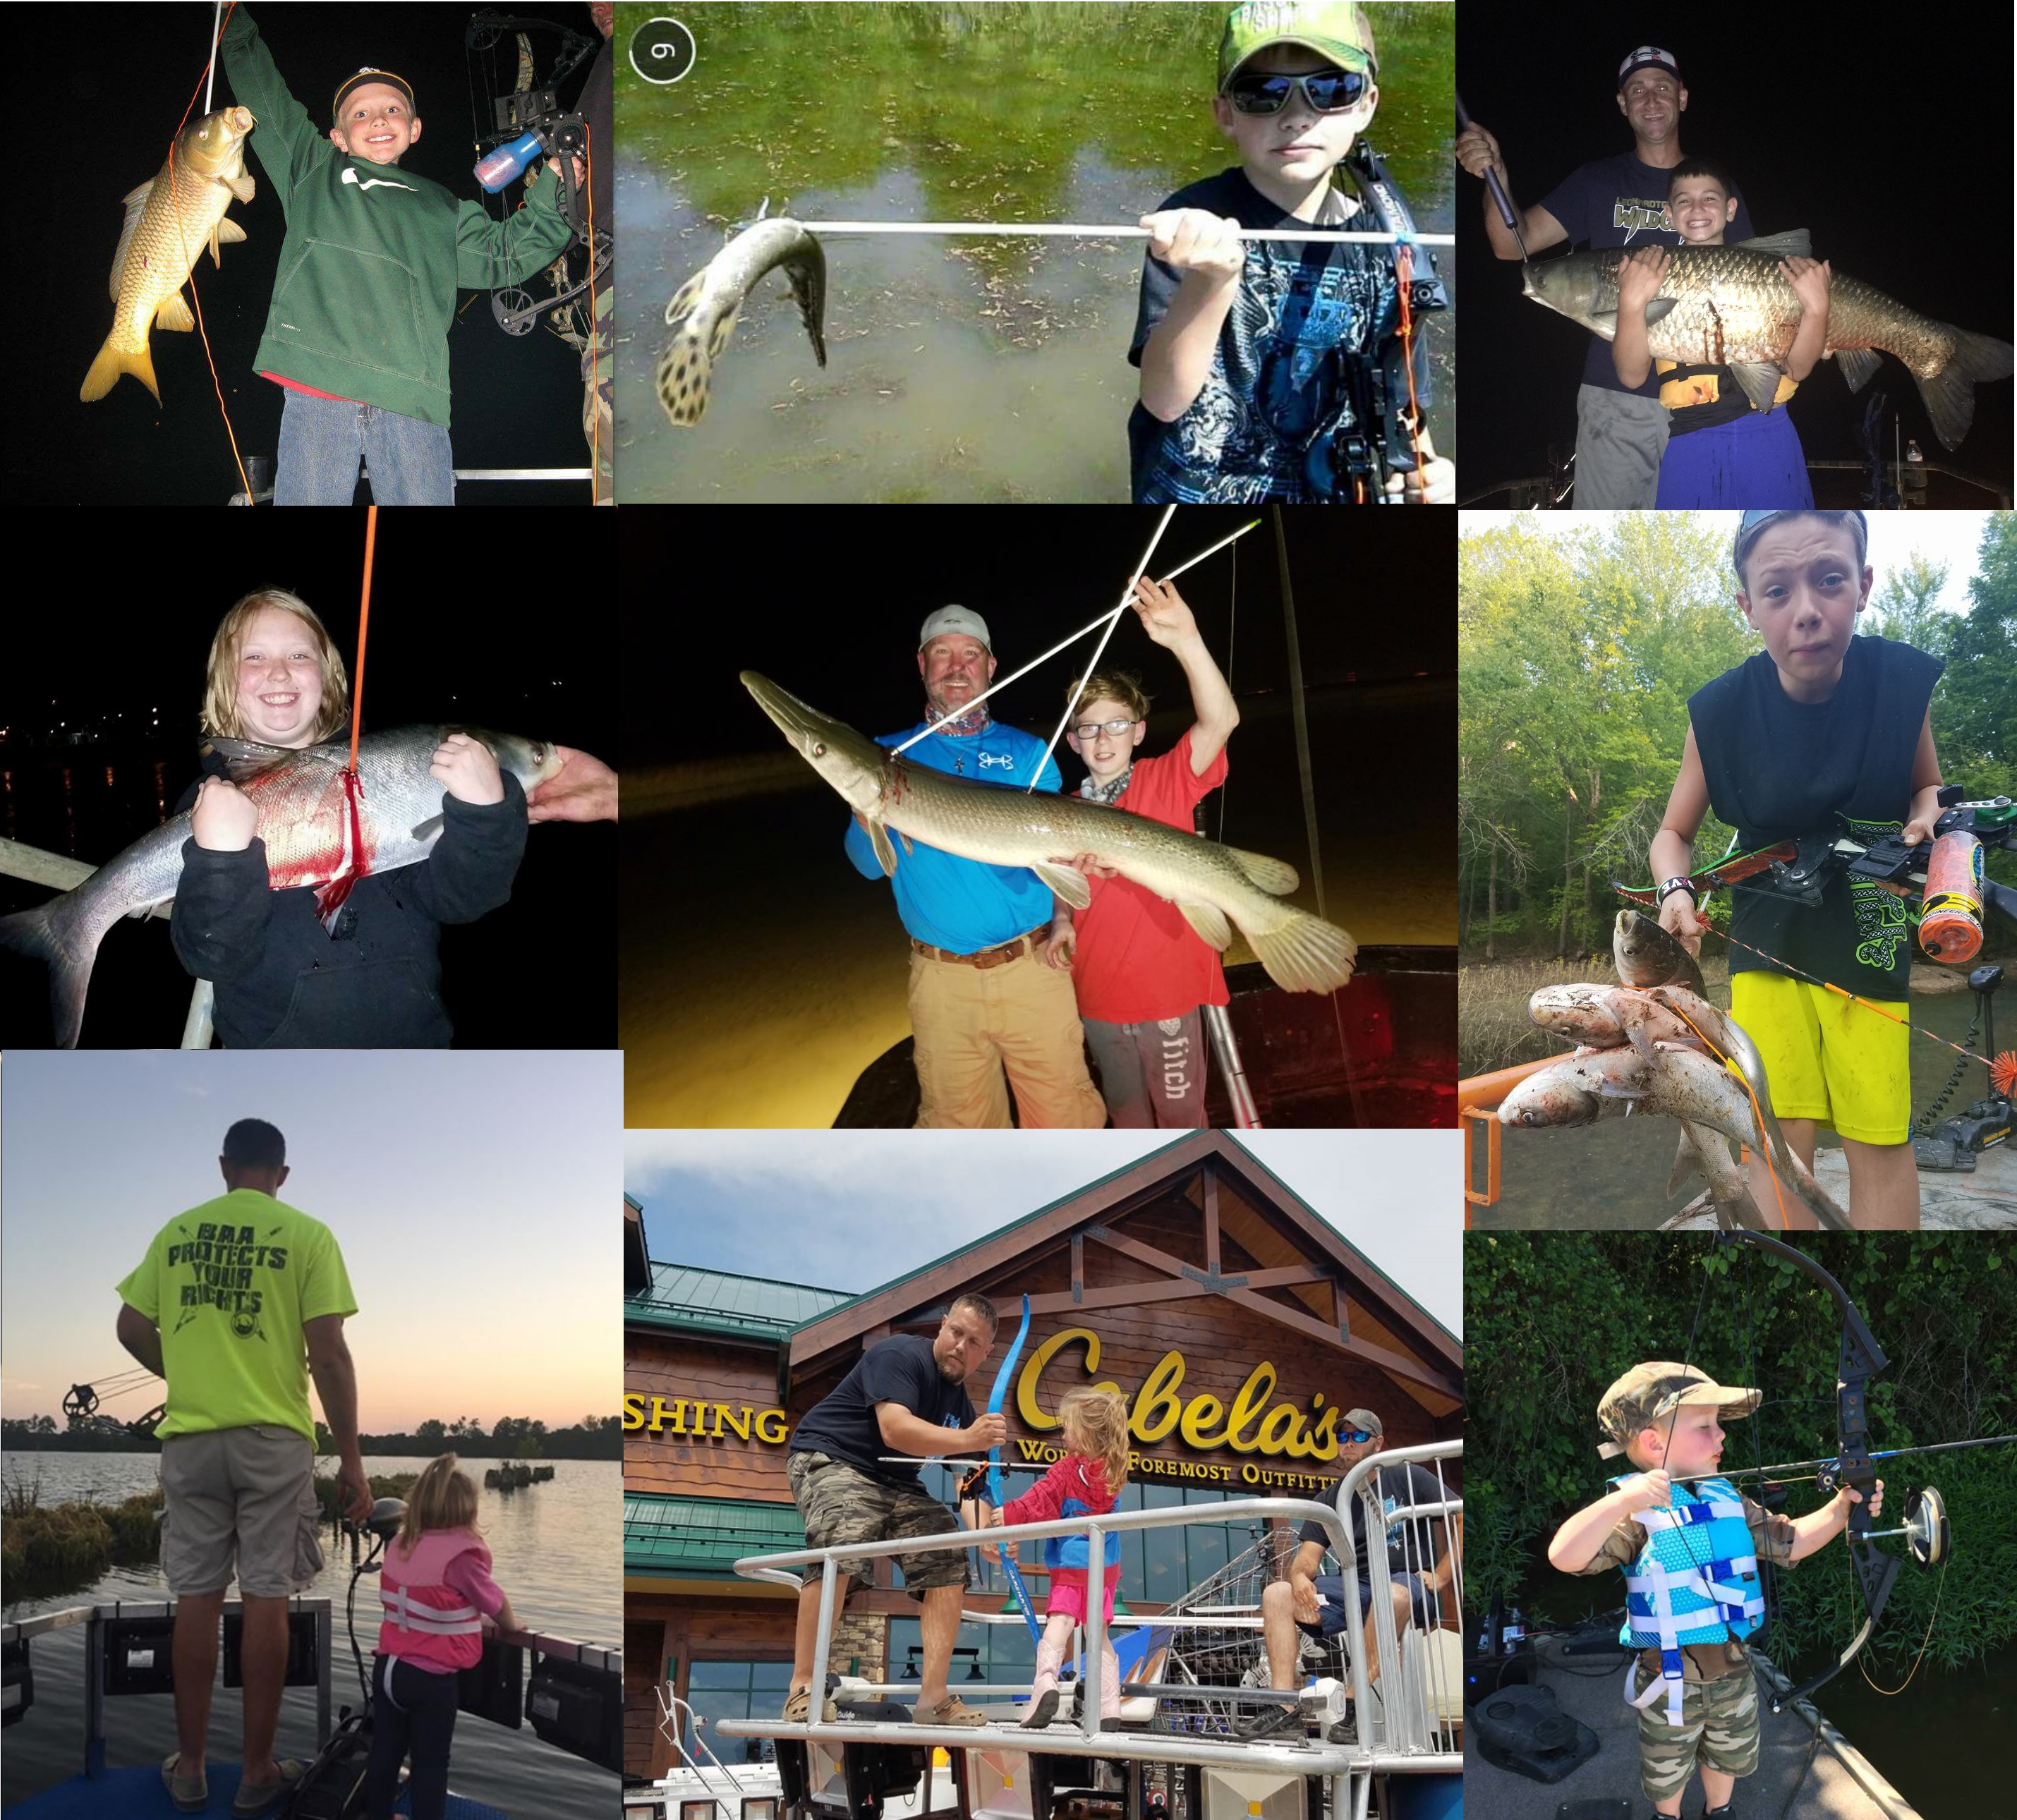 What is Bowfishing? – The Fisheries Blog